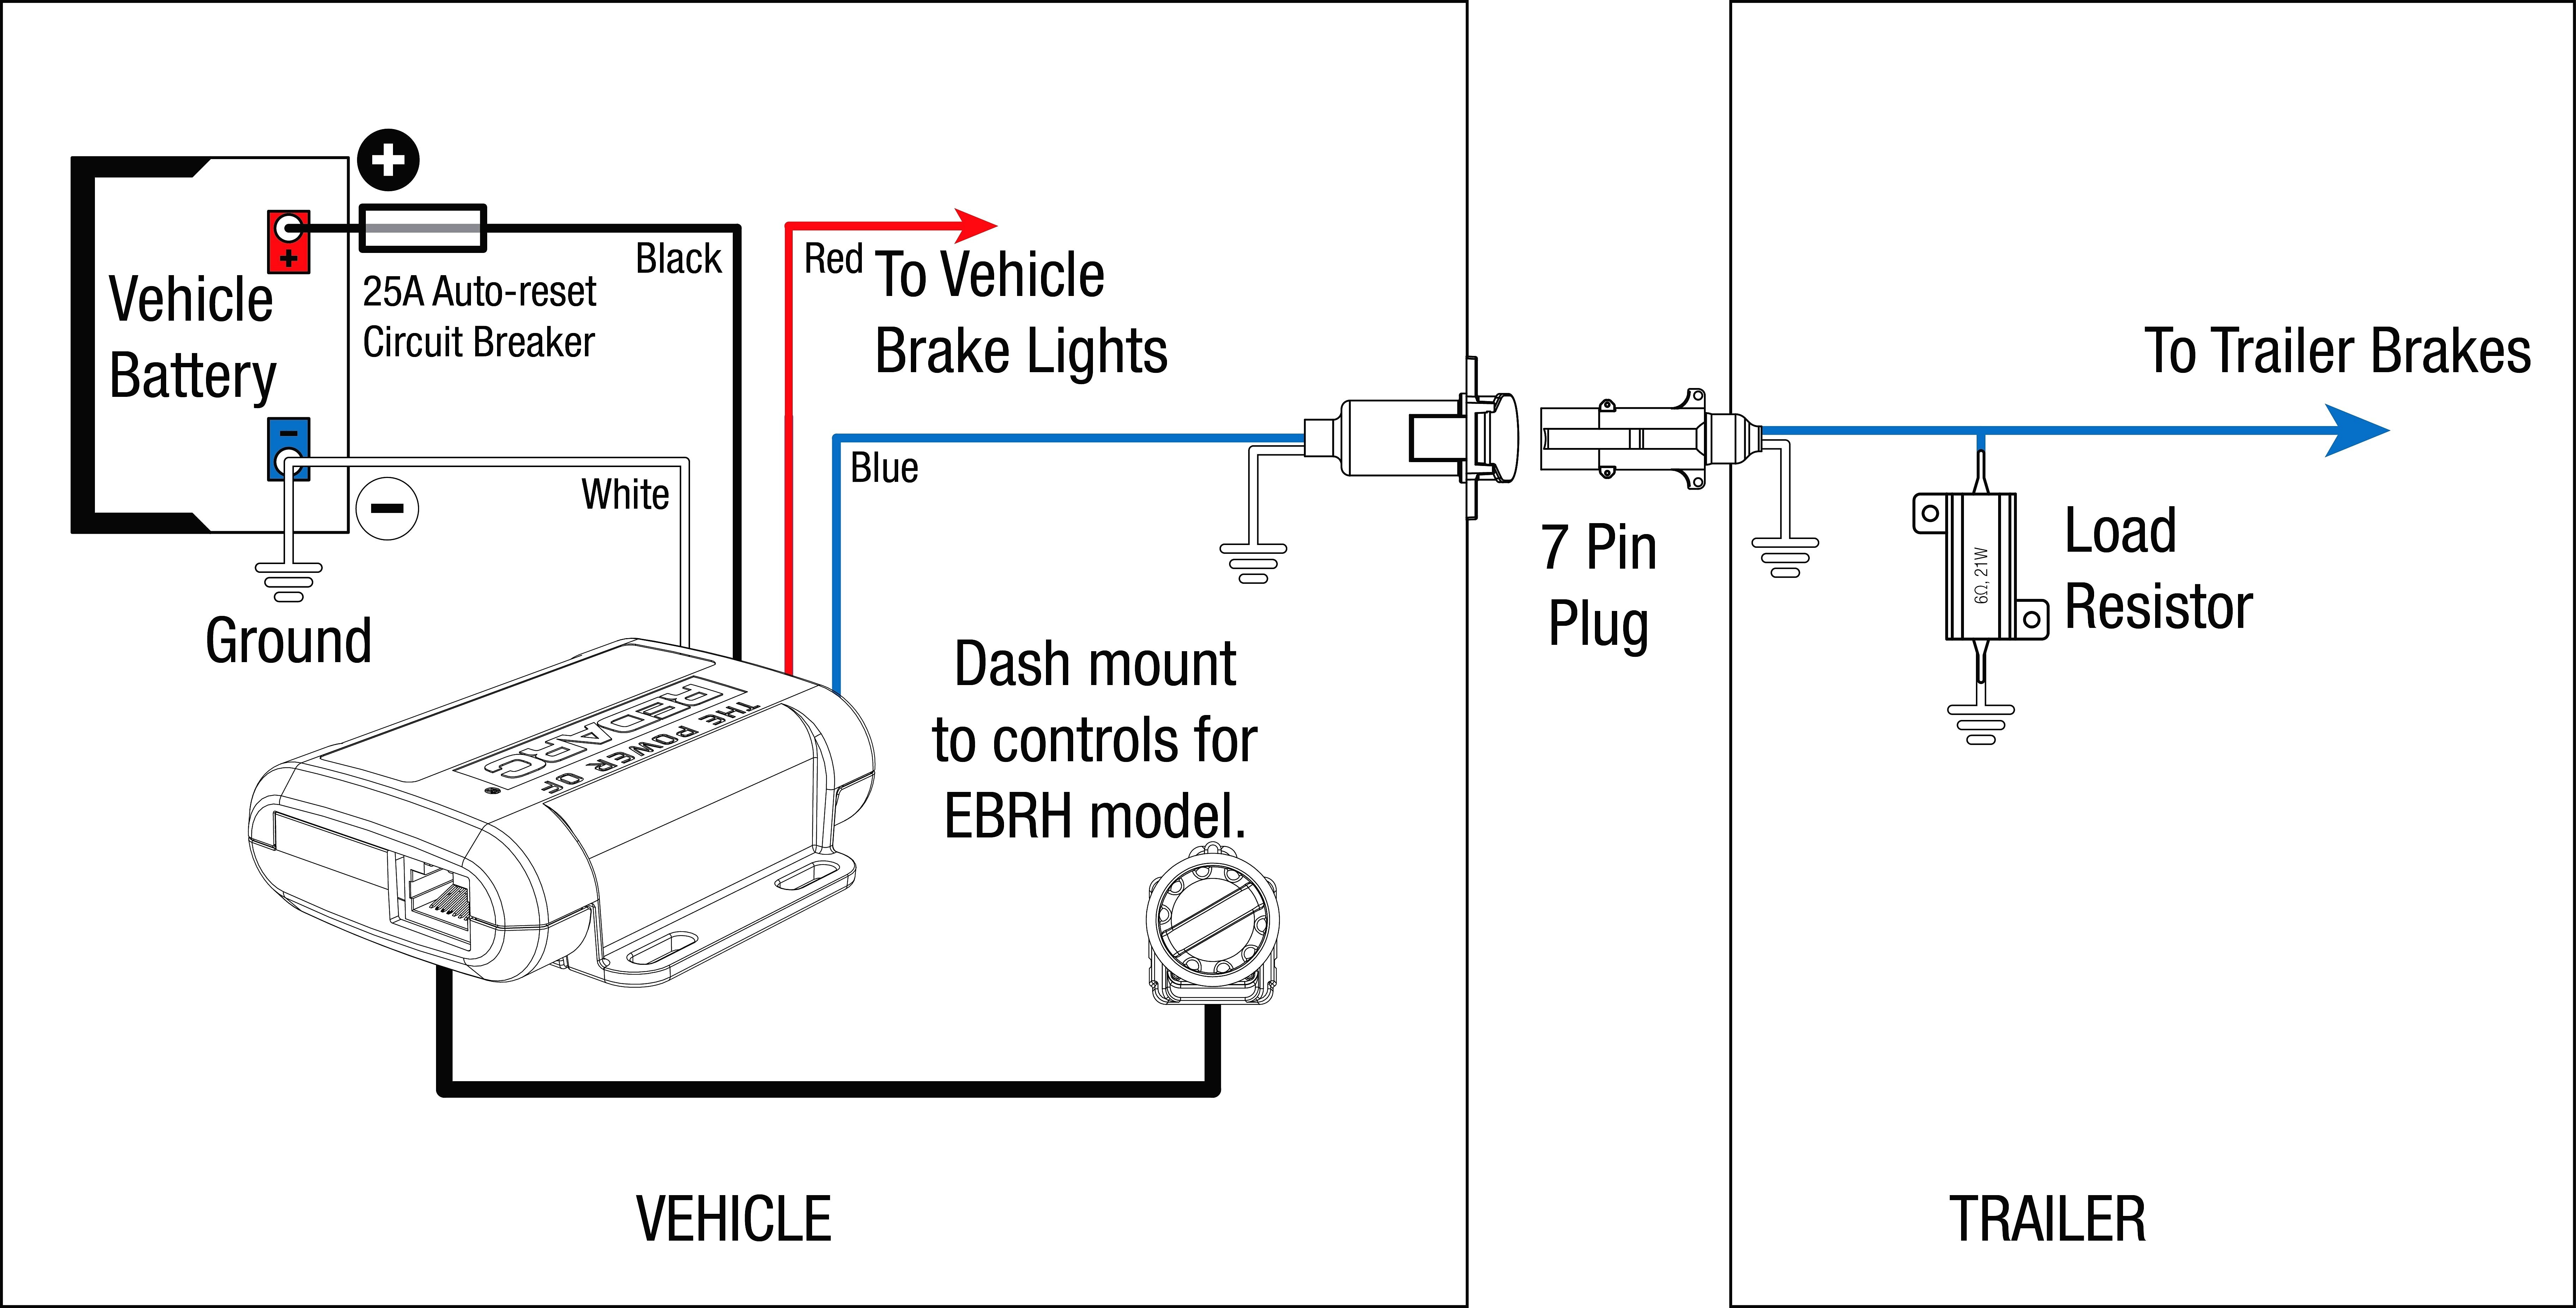 Hayes Brake Controller Wiring Diagram Simplified Shapes Wiring - Hayes Brake Controller Wiring Diagram